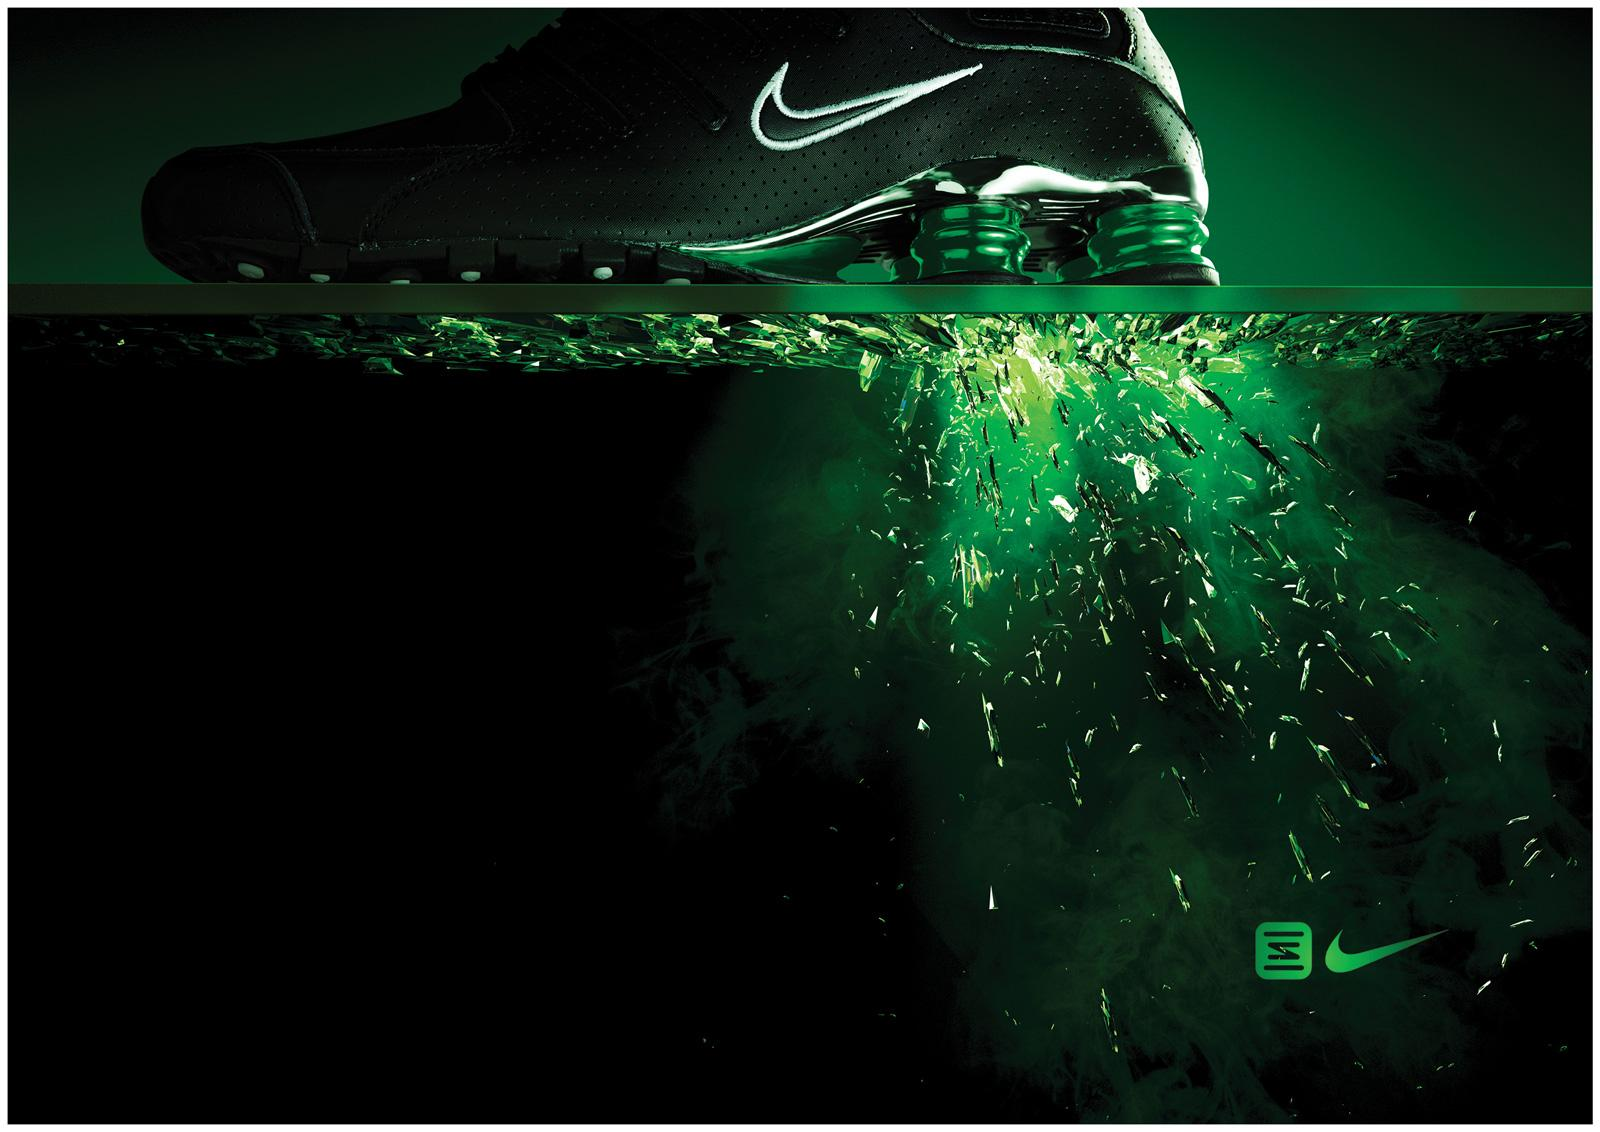 Nike Outdoor Ad -  Green